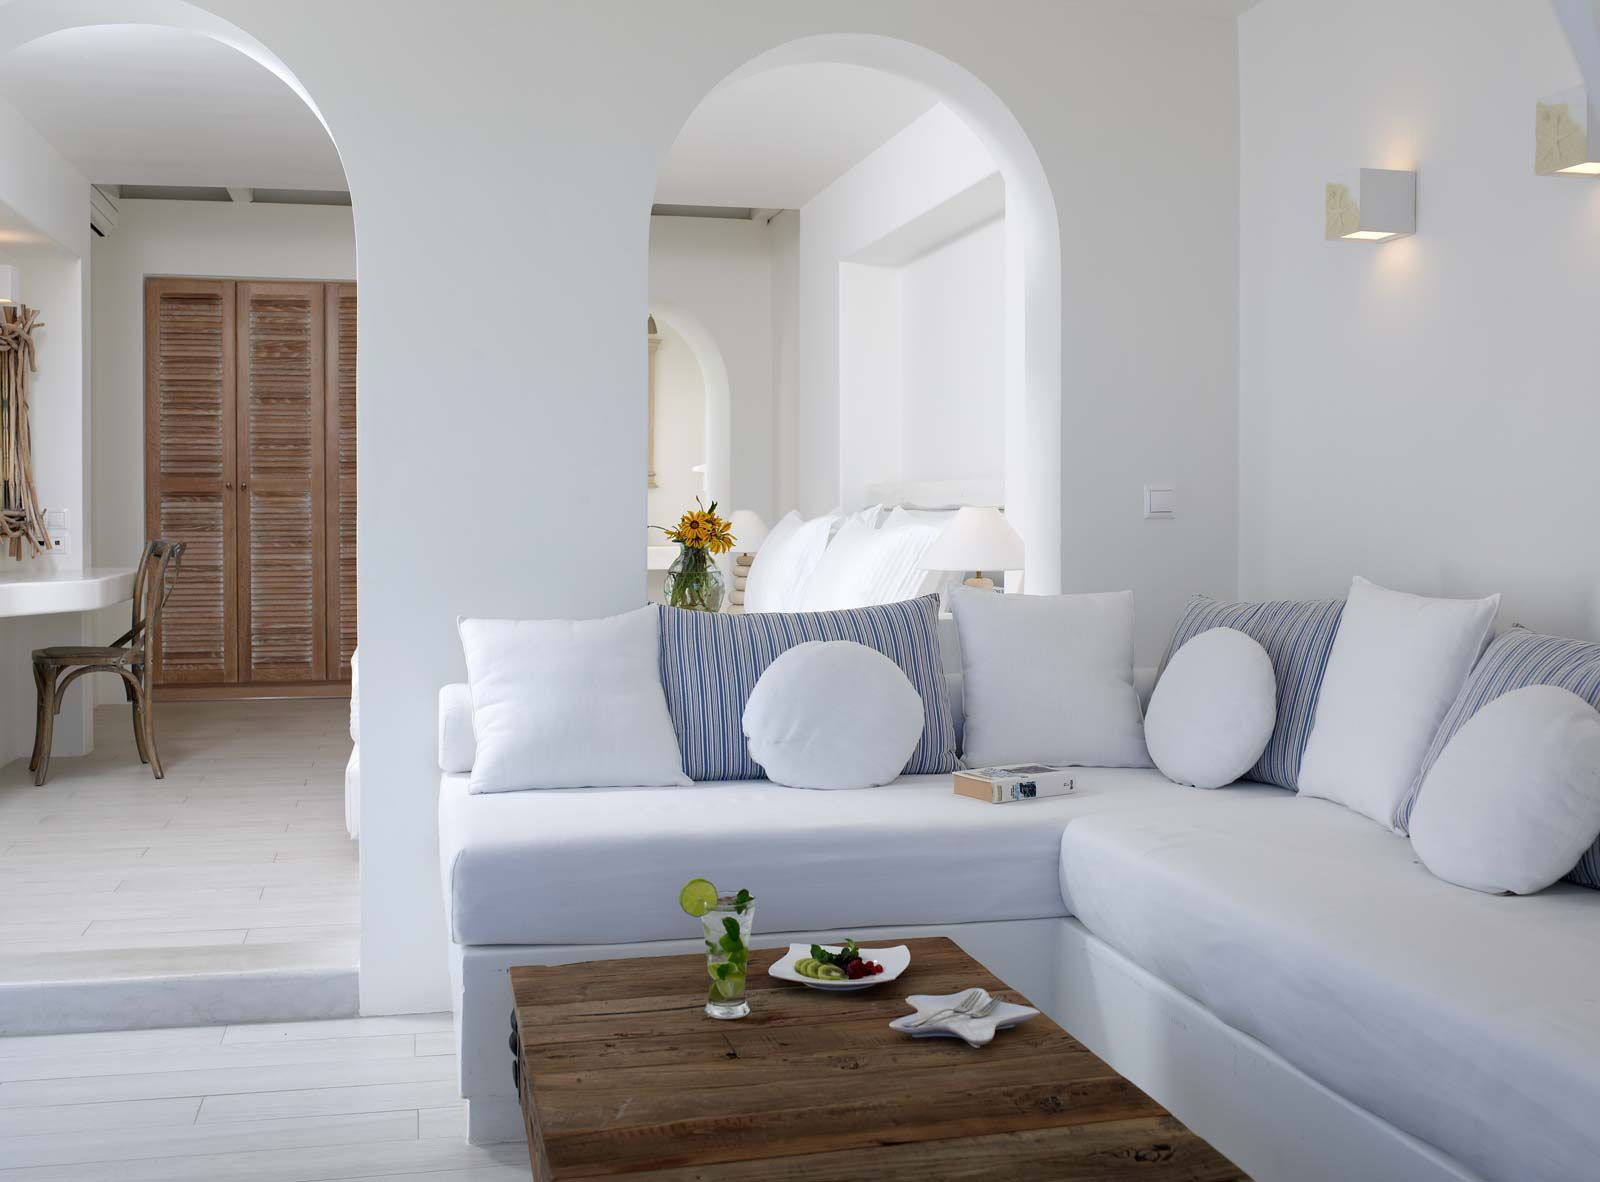 GREECE CHANNEL | Naxos Greece . Villa Marandi . Living Room Interior